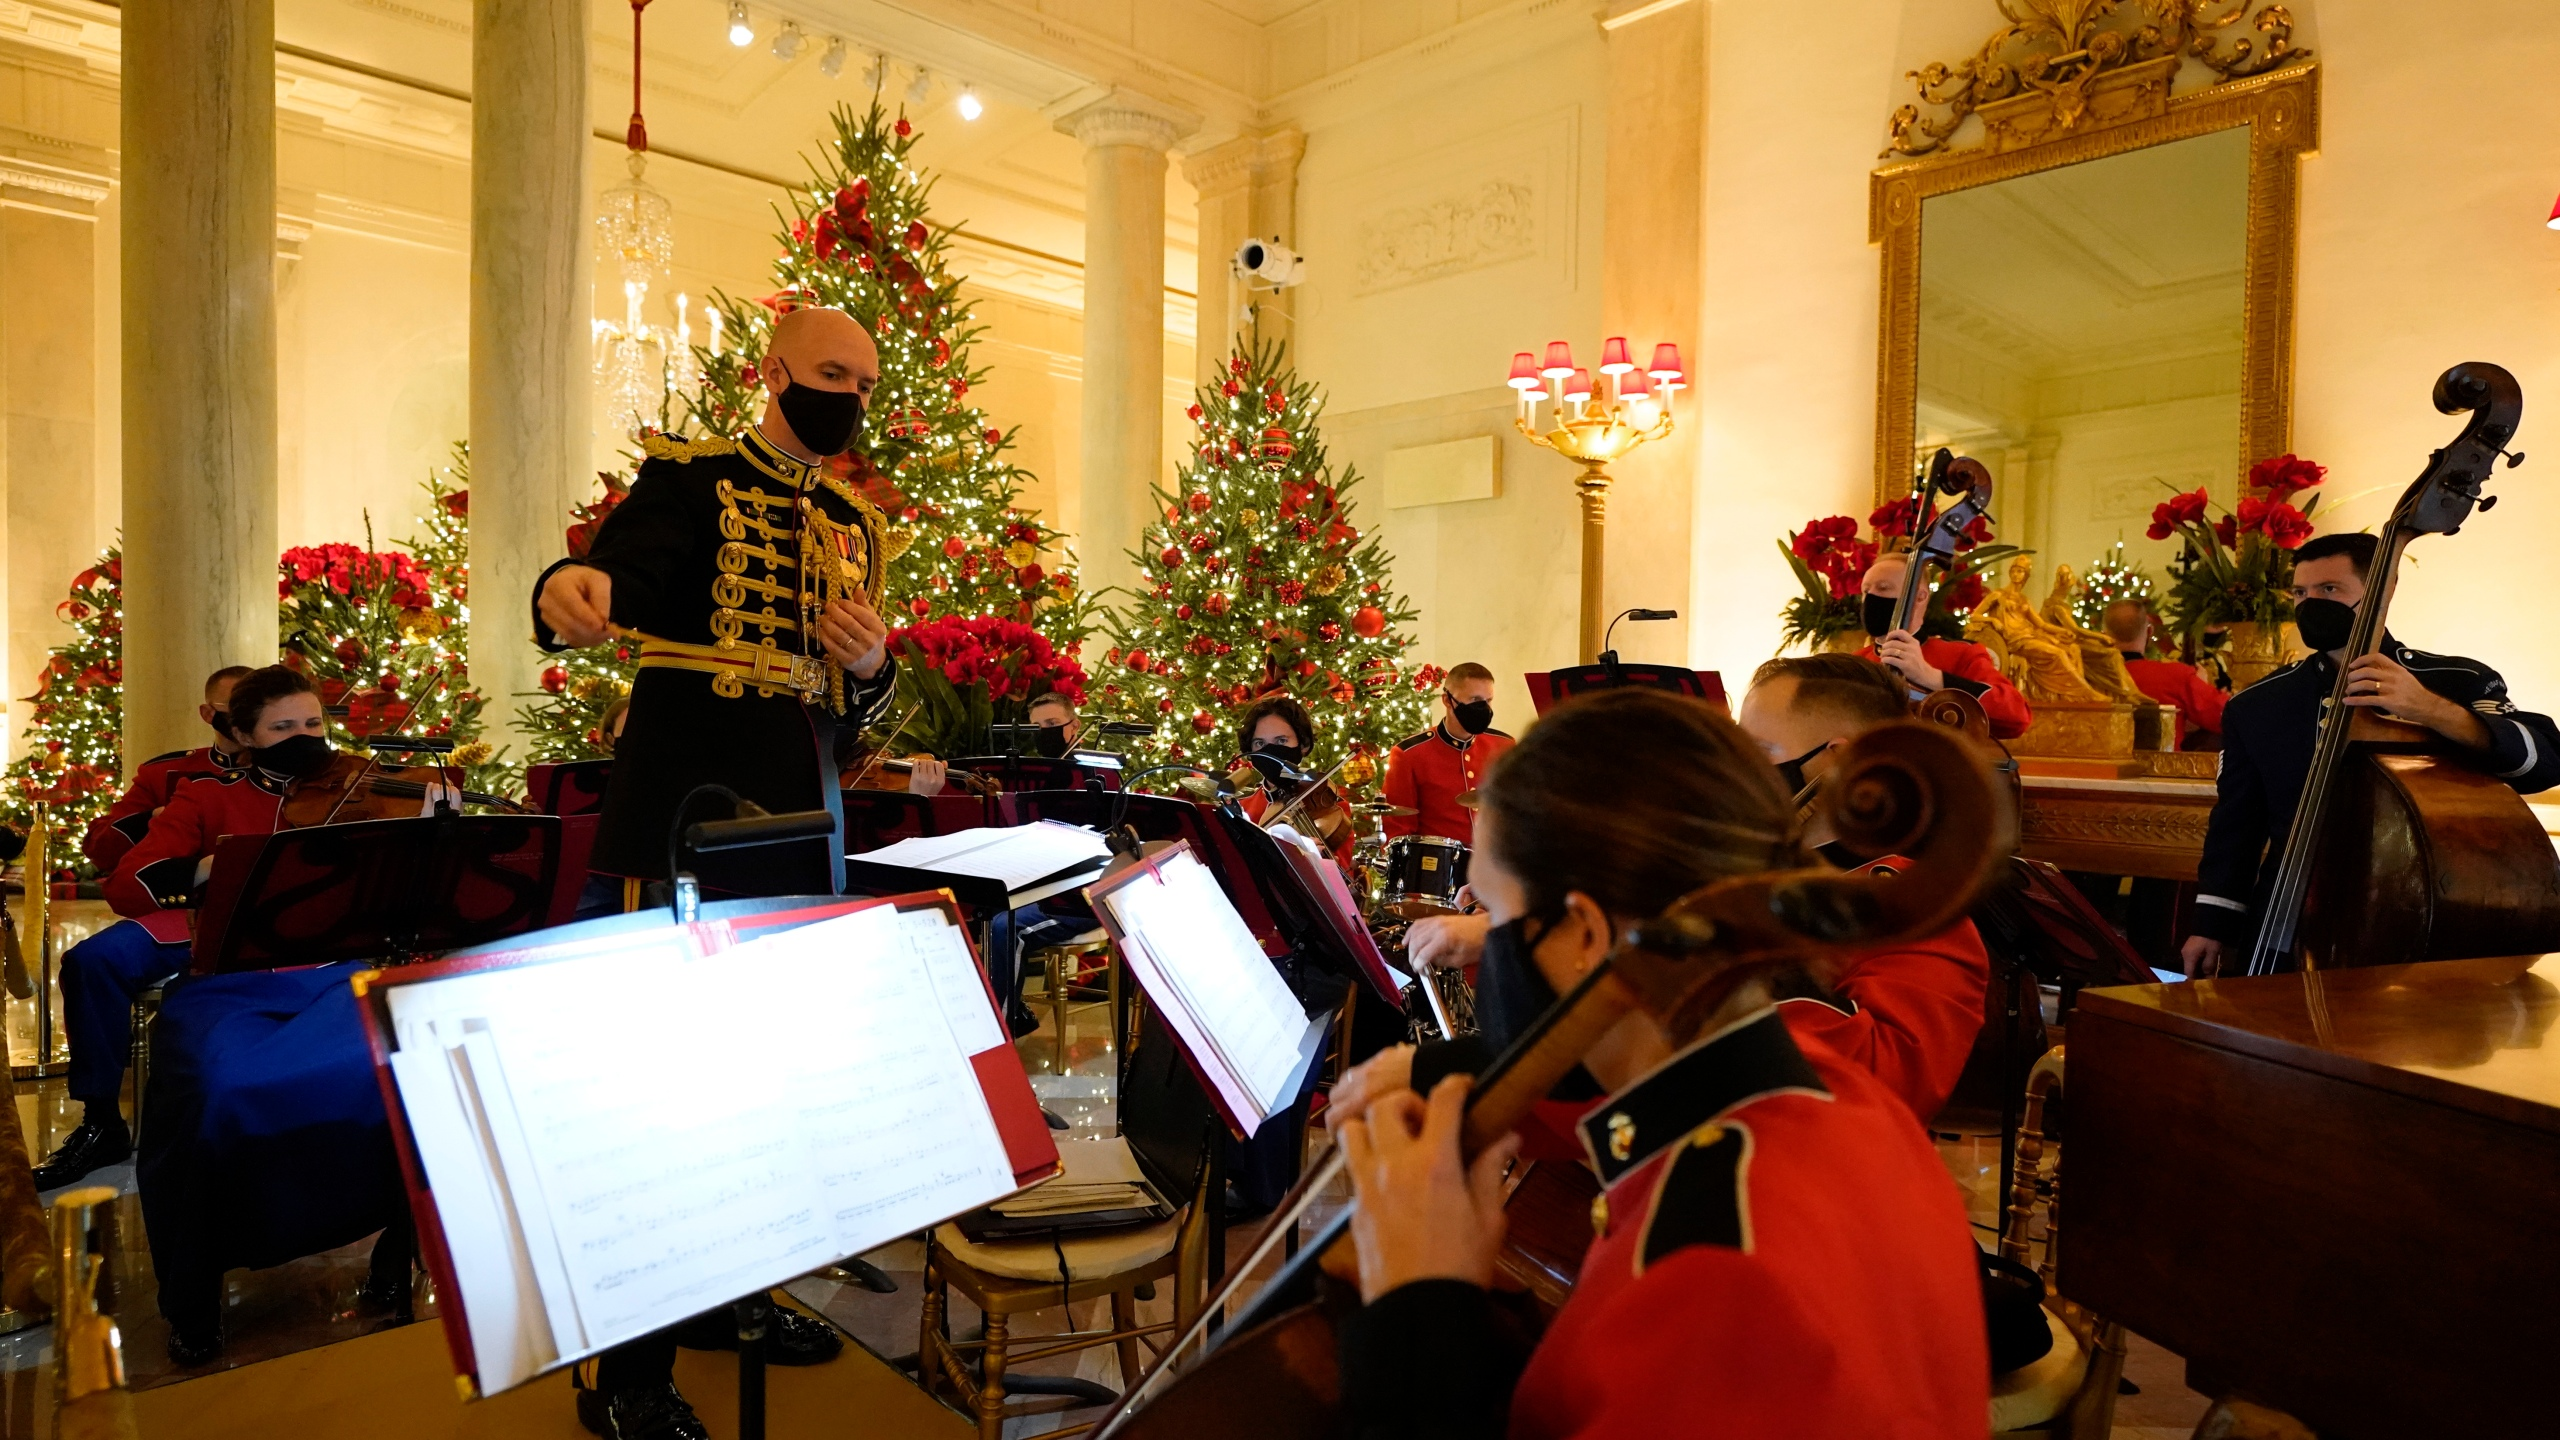 A U.S. Marine Corps band performs in the Entrance Hall of the White House during the 2020 Christmas preview on Nov. 30, 2020. (Patrick Semansky / Associated Press)